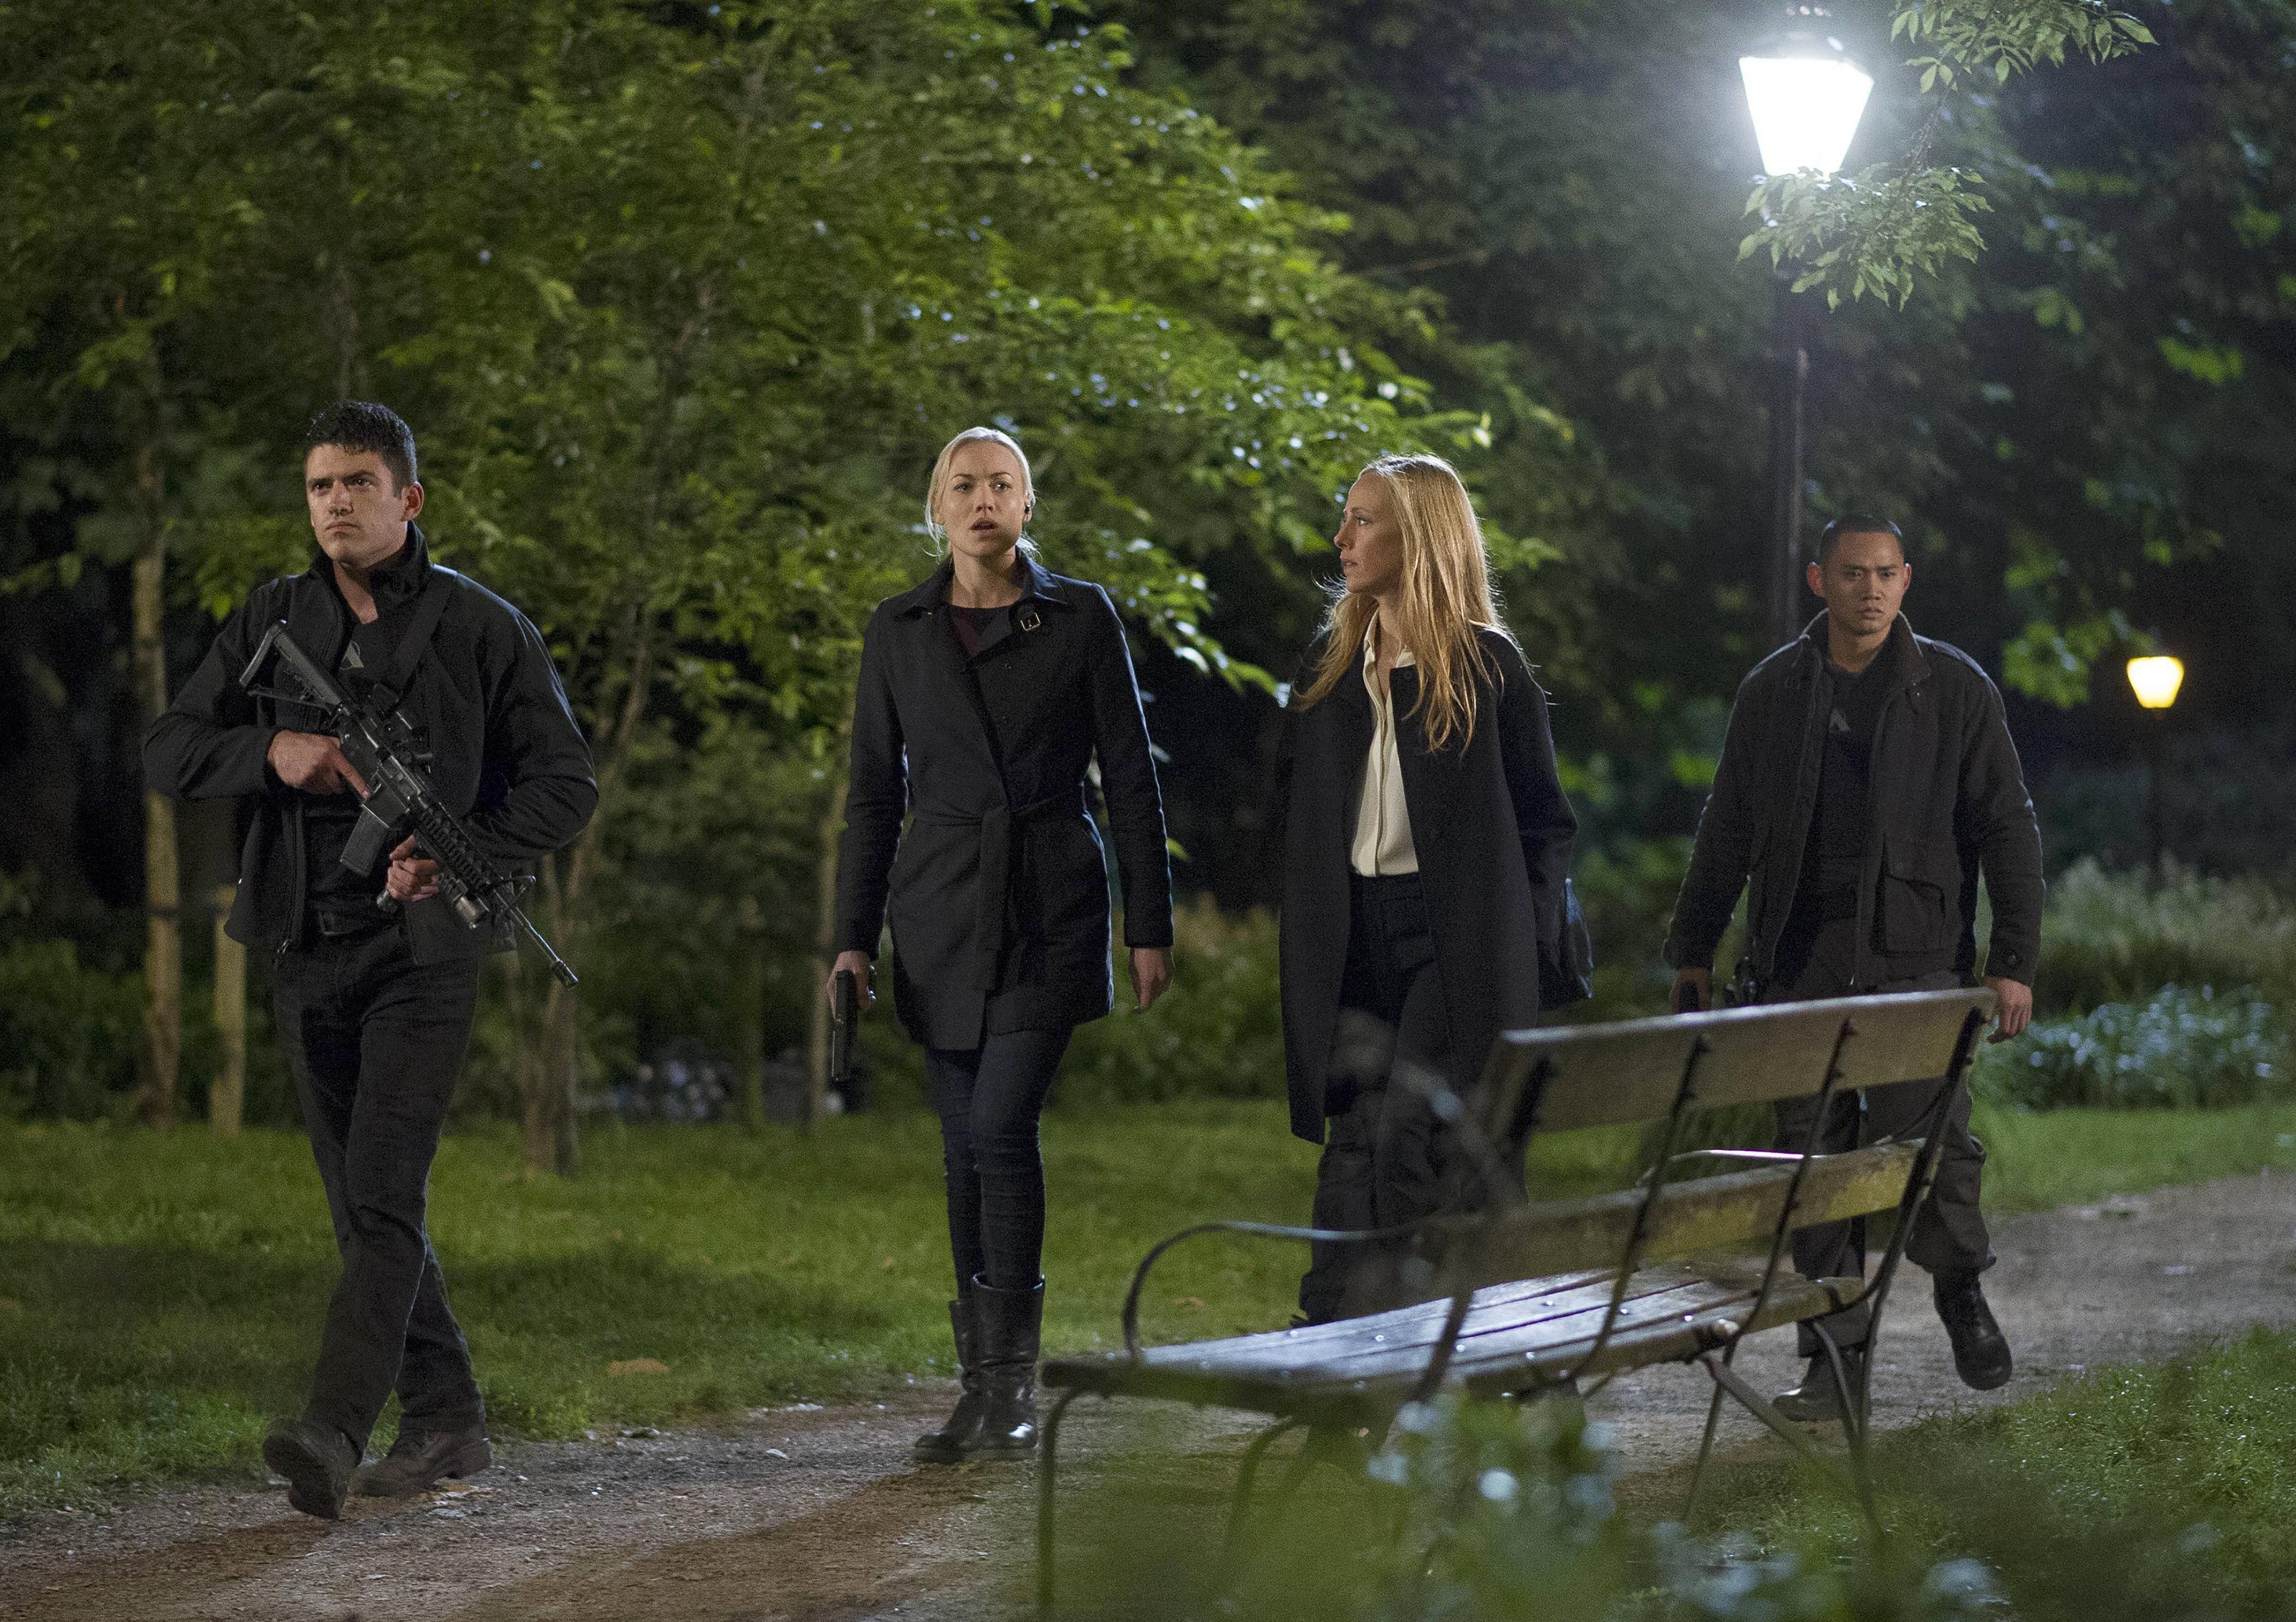 Kate-Morgan-Audrey-Yvonne-Strahovski-Kim-Raver-24-Live-Another-Day-Finale-Episode-12